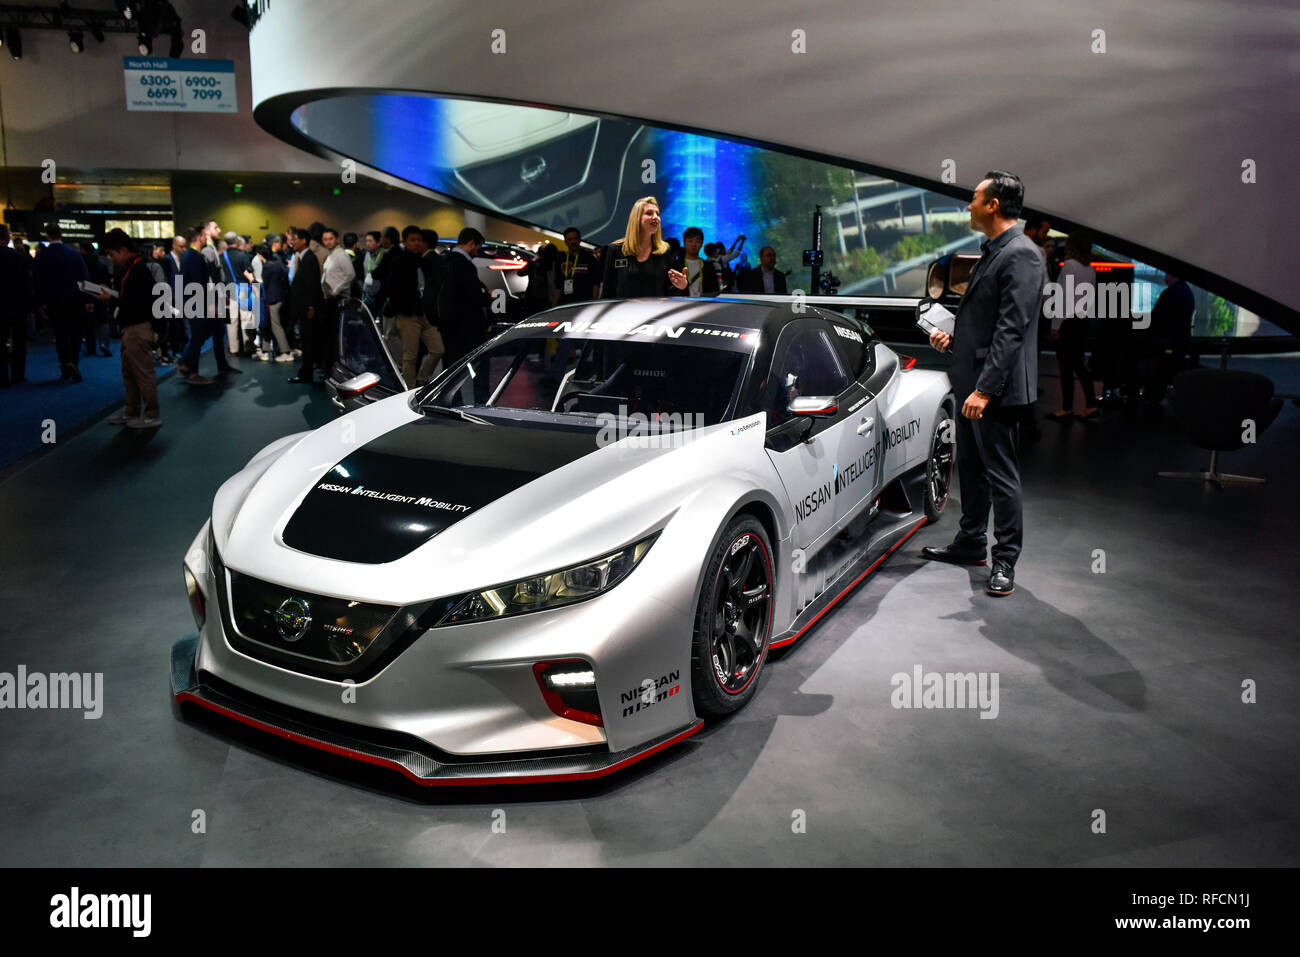 Nissan Concept car at the 2019 CES Consumer Electronics Show in Las Vegas, Nevada - Stock Image